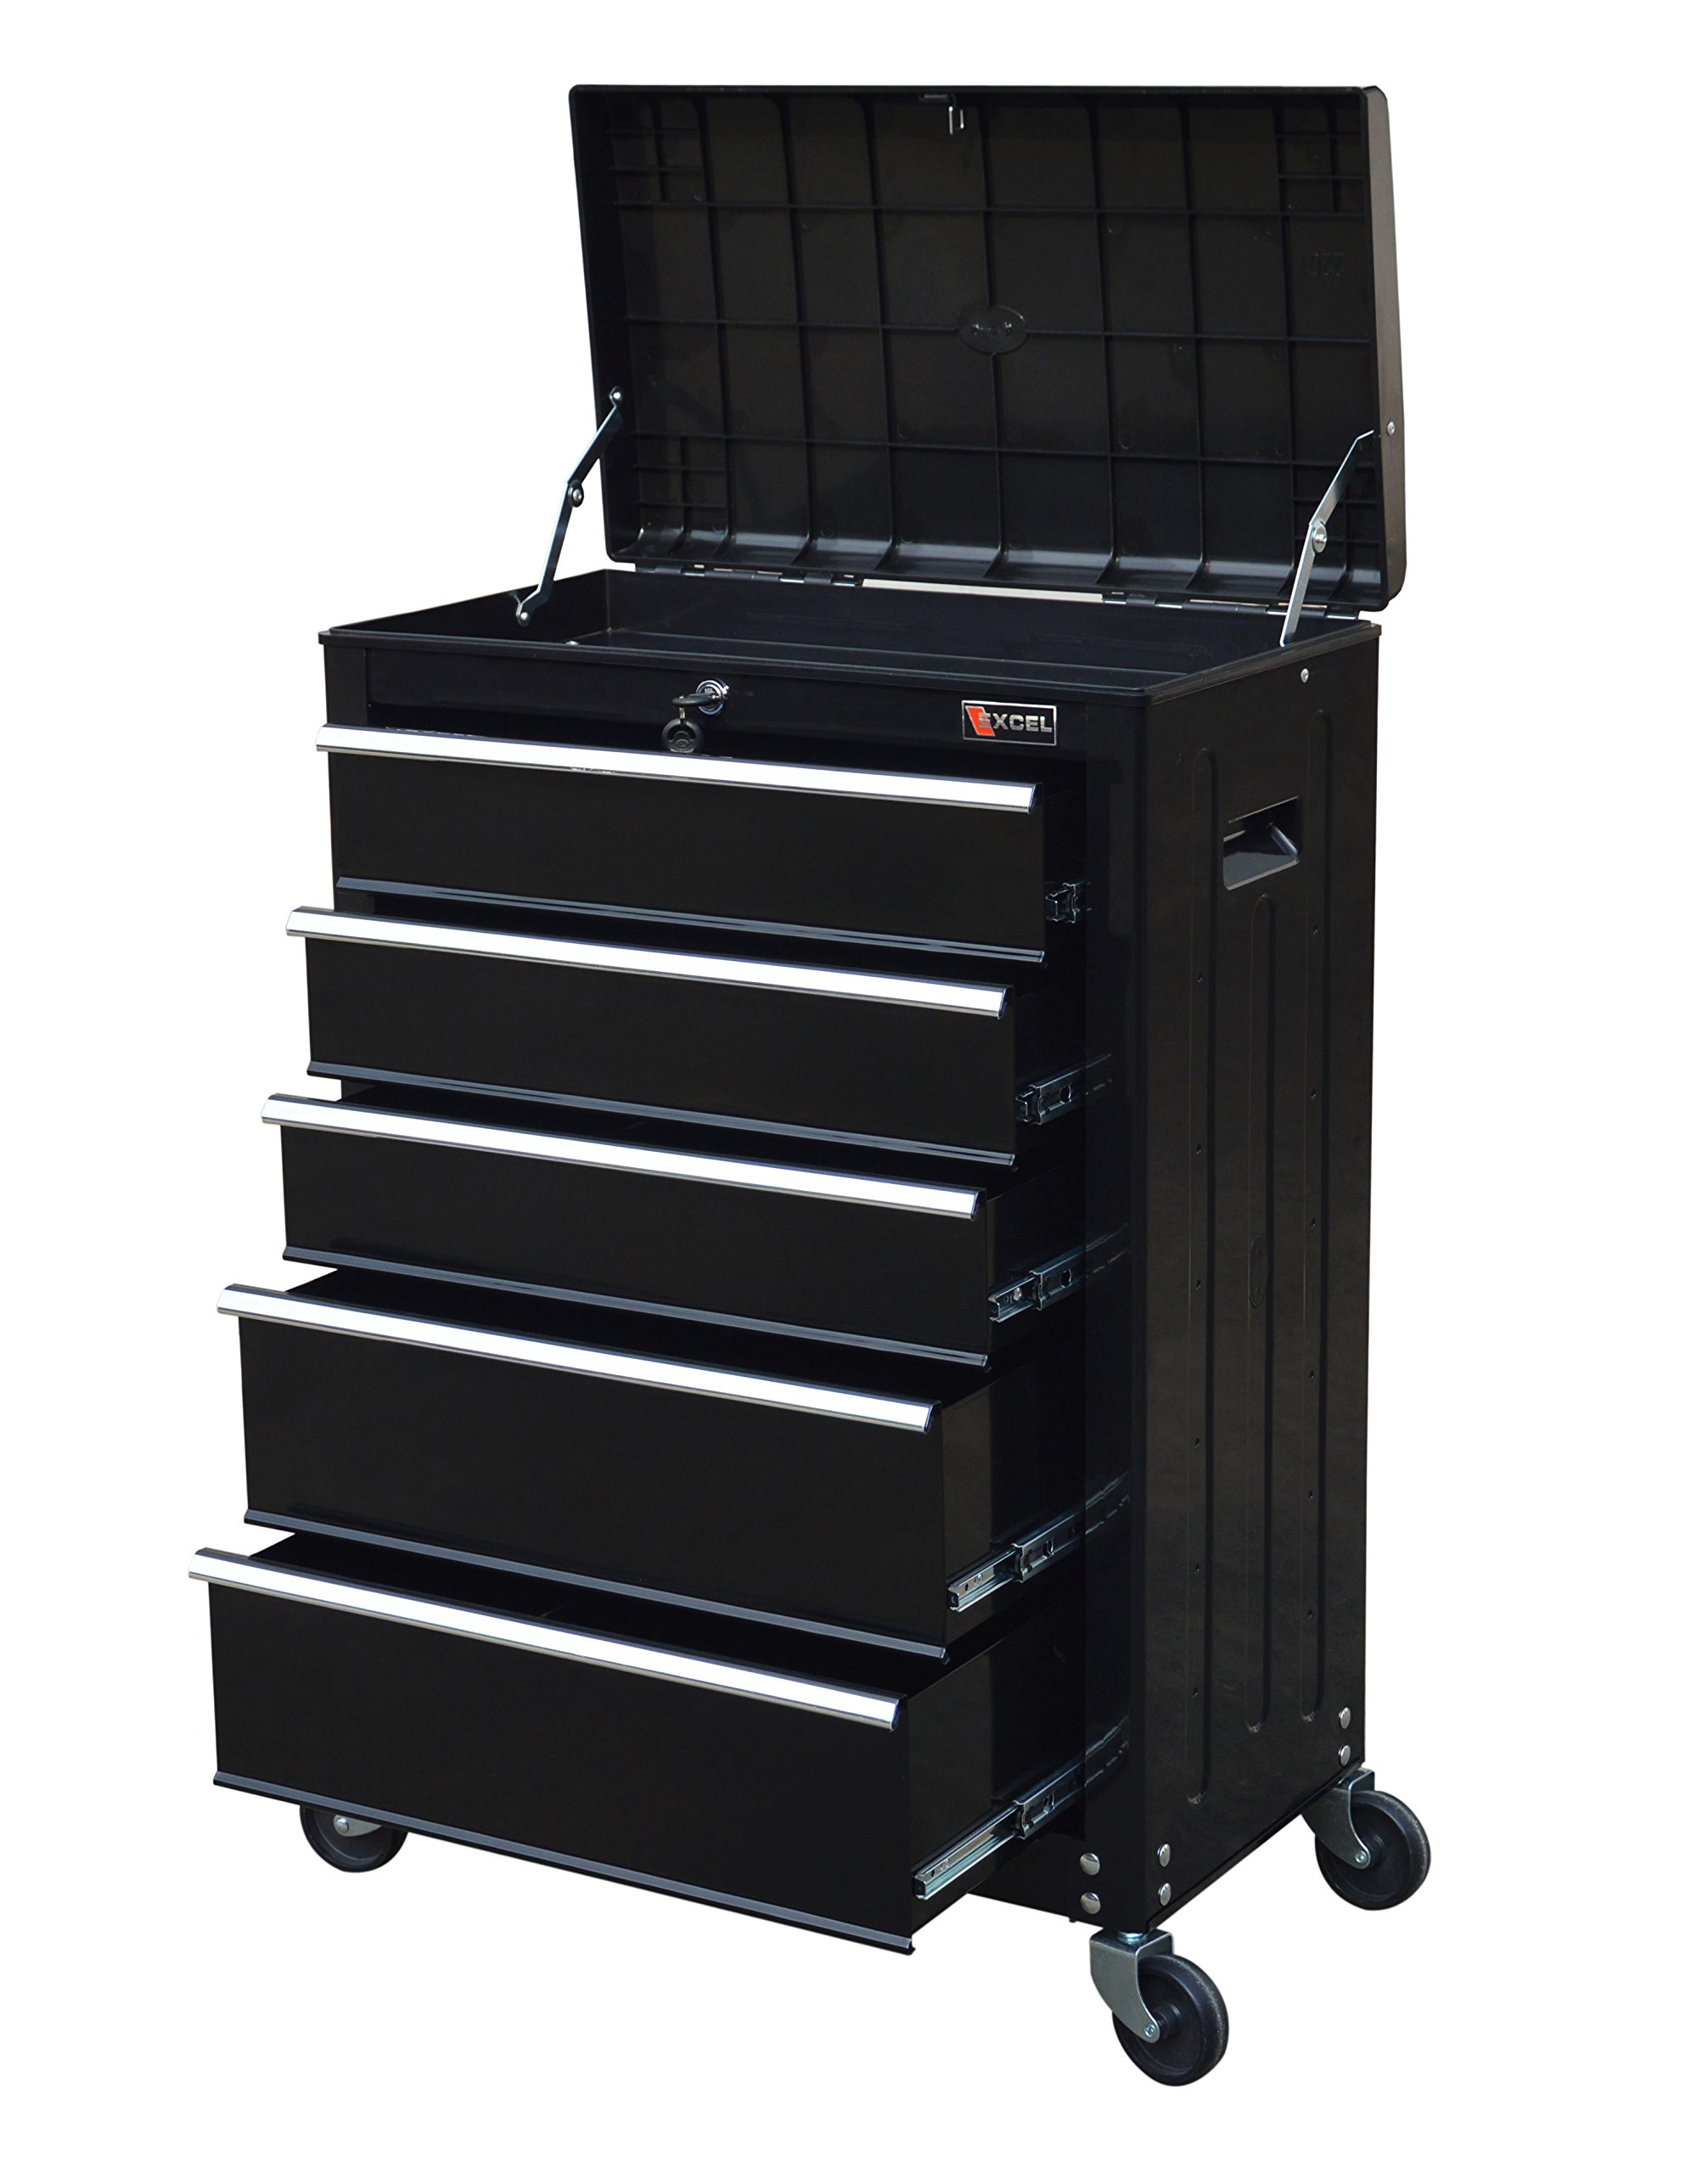 TB3205X-BK Excel 22'' Roller Tool Cabinet with 5 Ball Bearing Drawers, 22in, Black by Excel (Image #1)